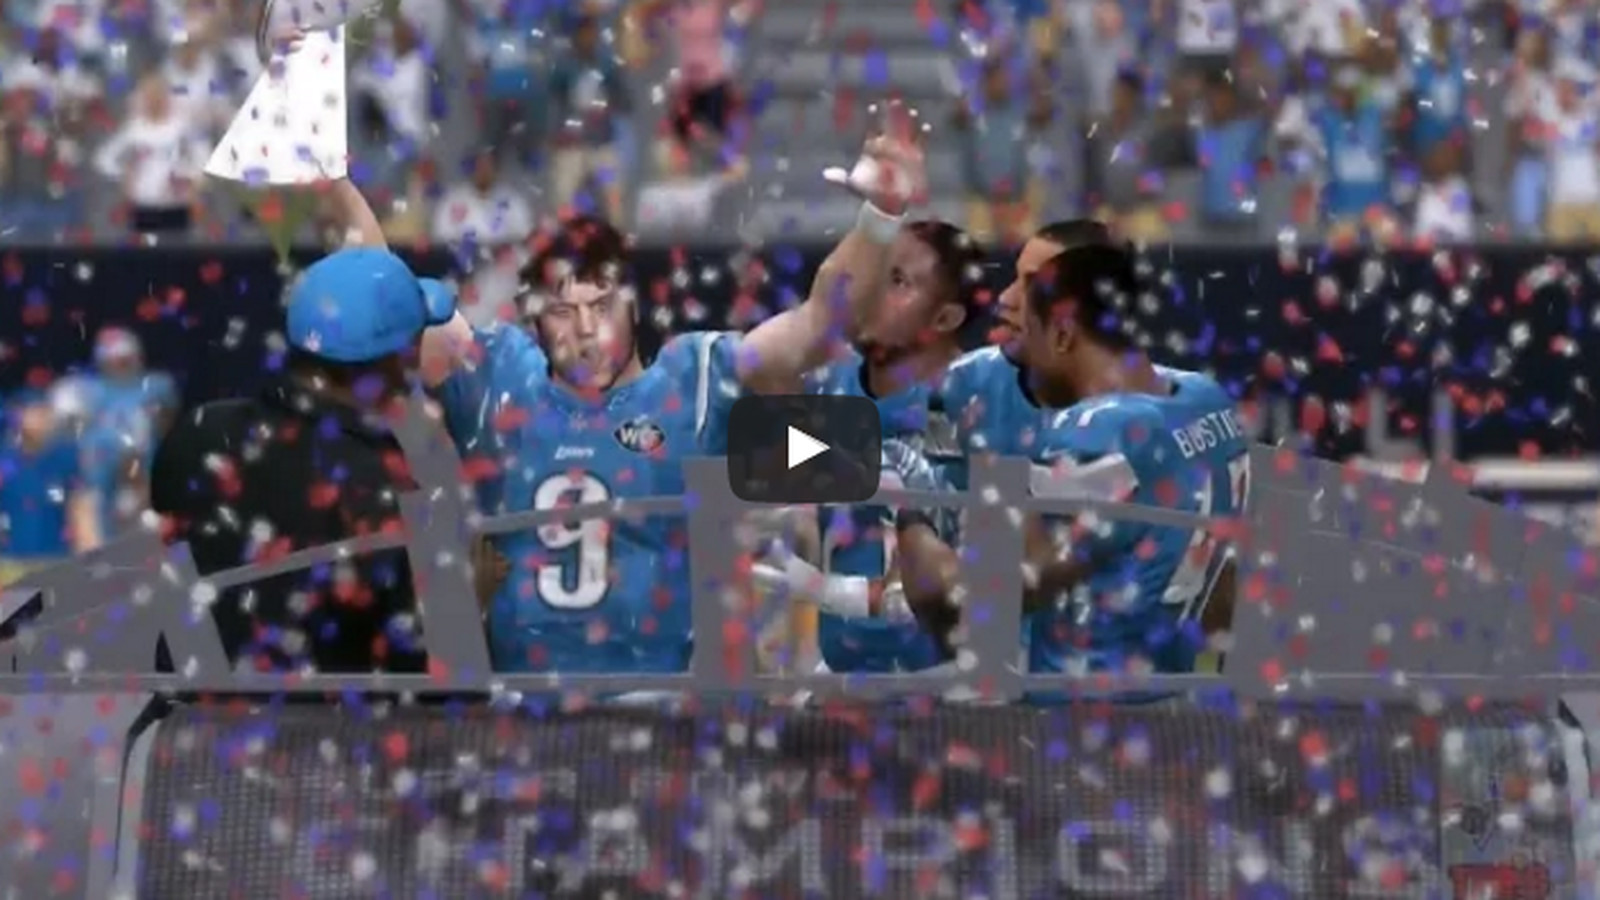 Lions_20super_20bowl_20madden.0